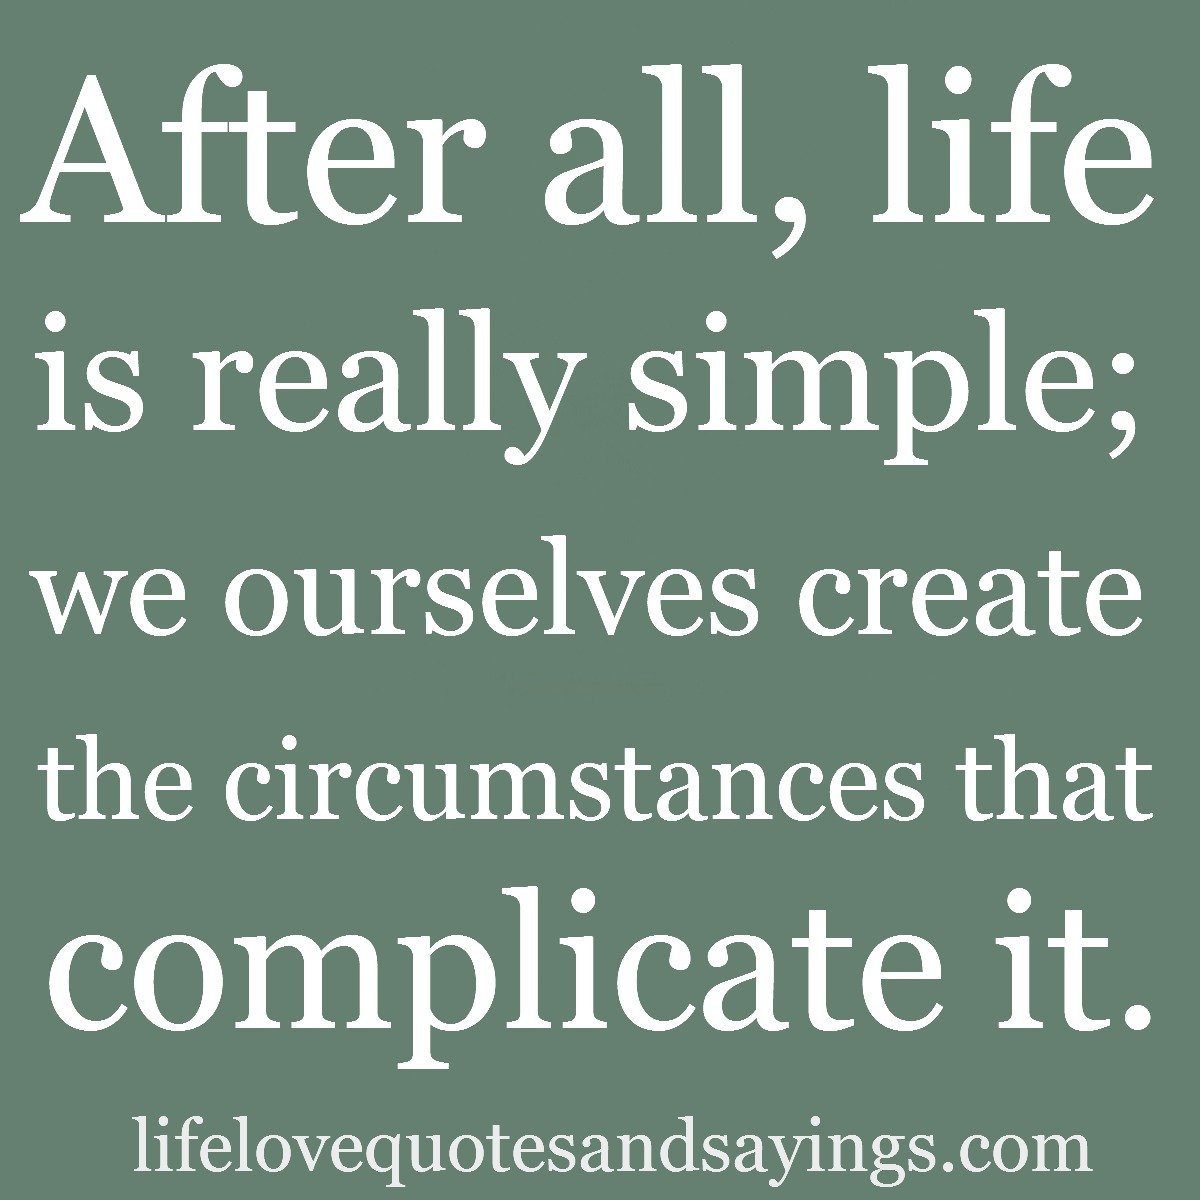 Quotes About Life: Simplicity Quotes And Sayings. QuotesGram